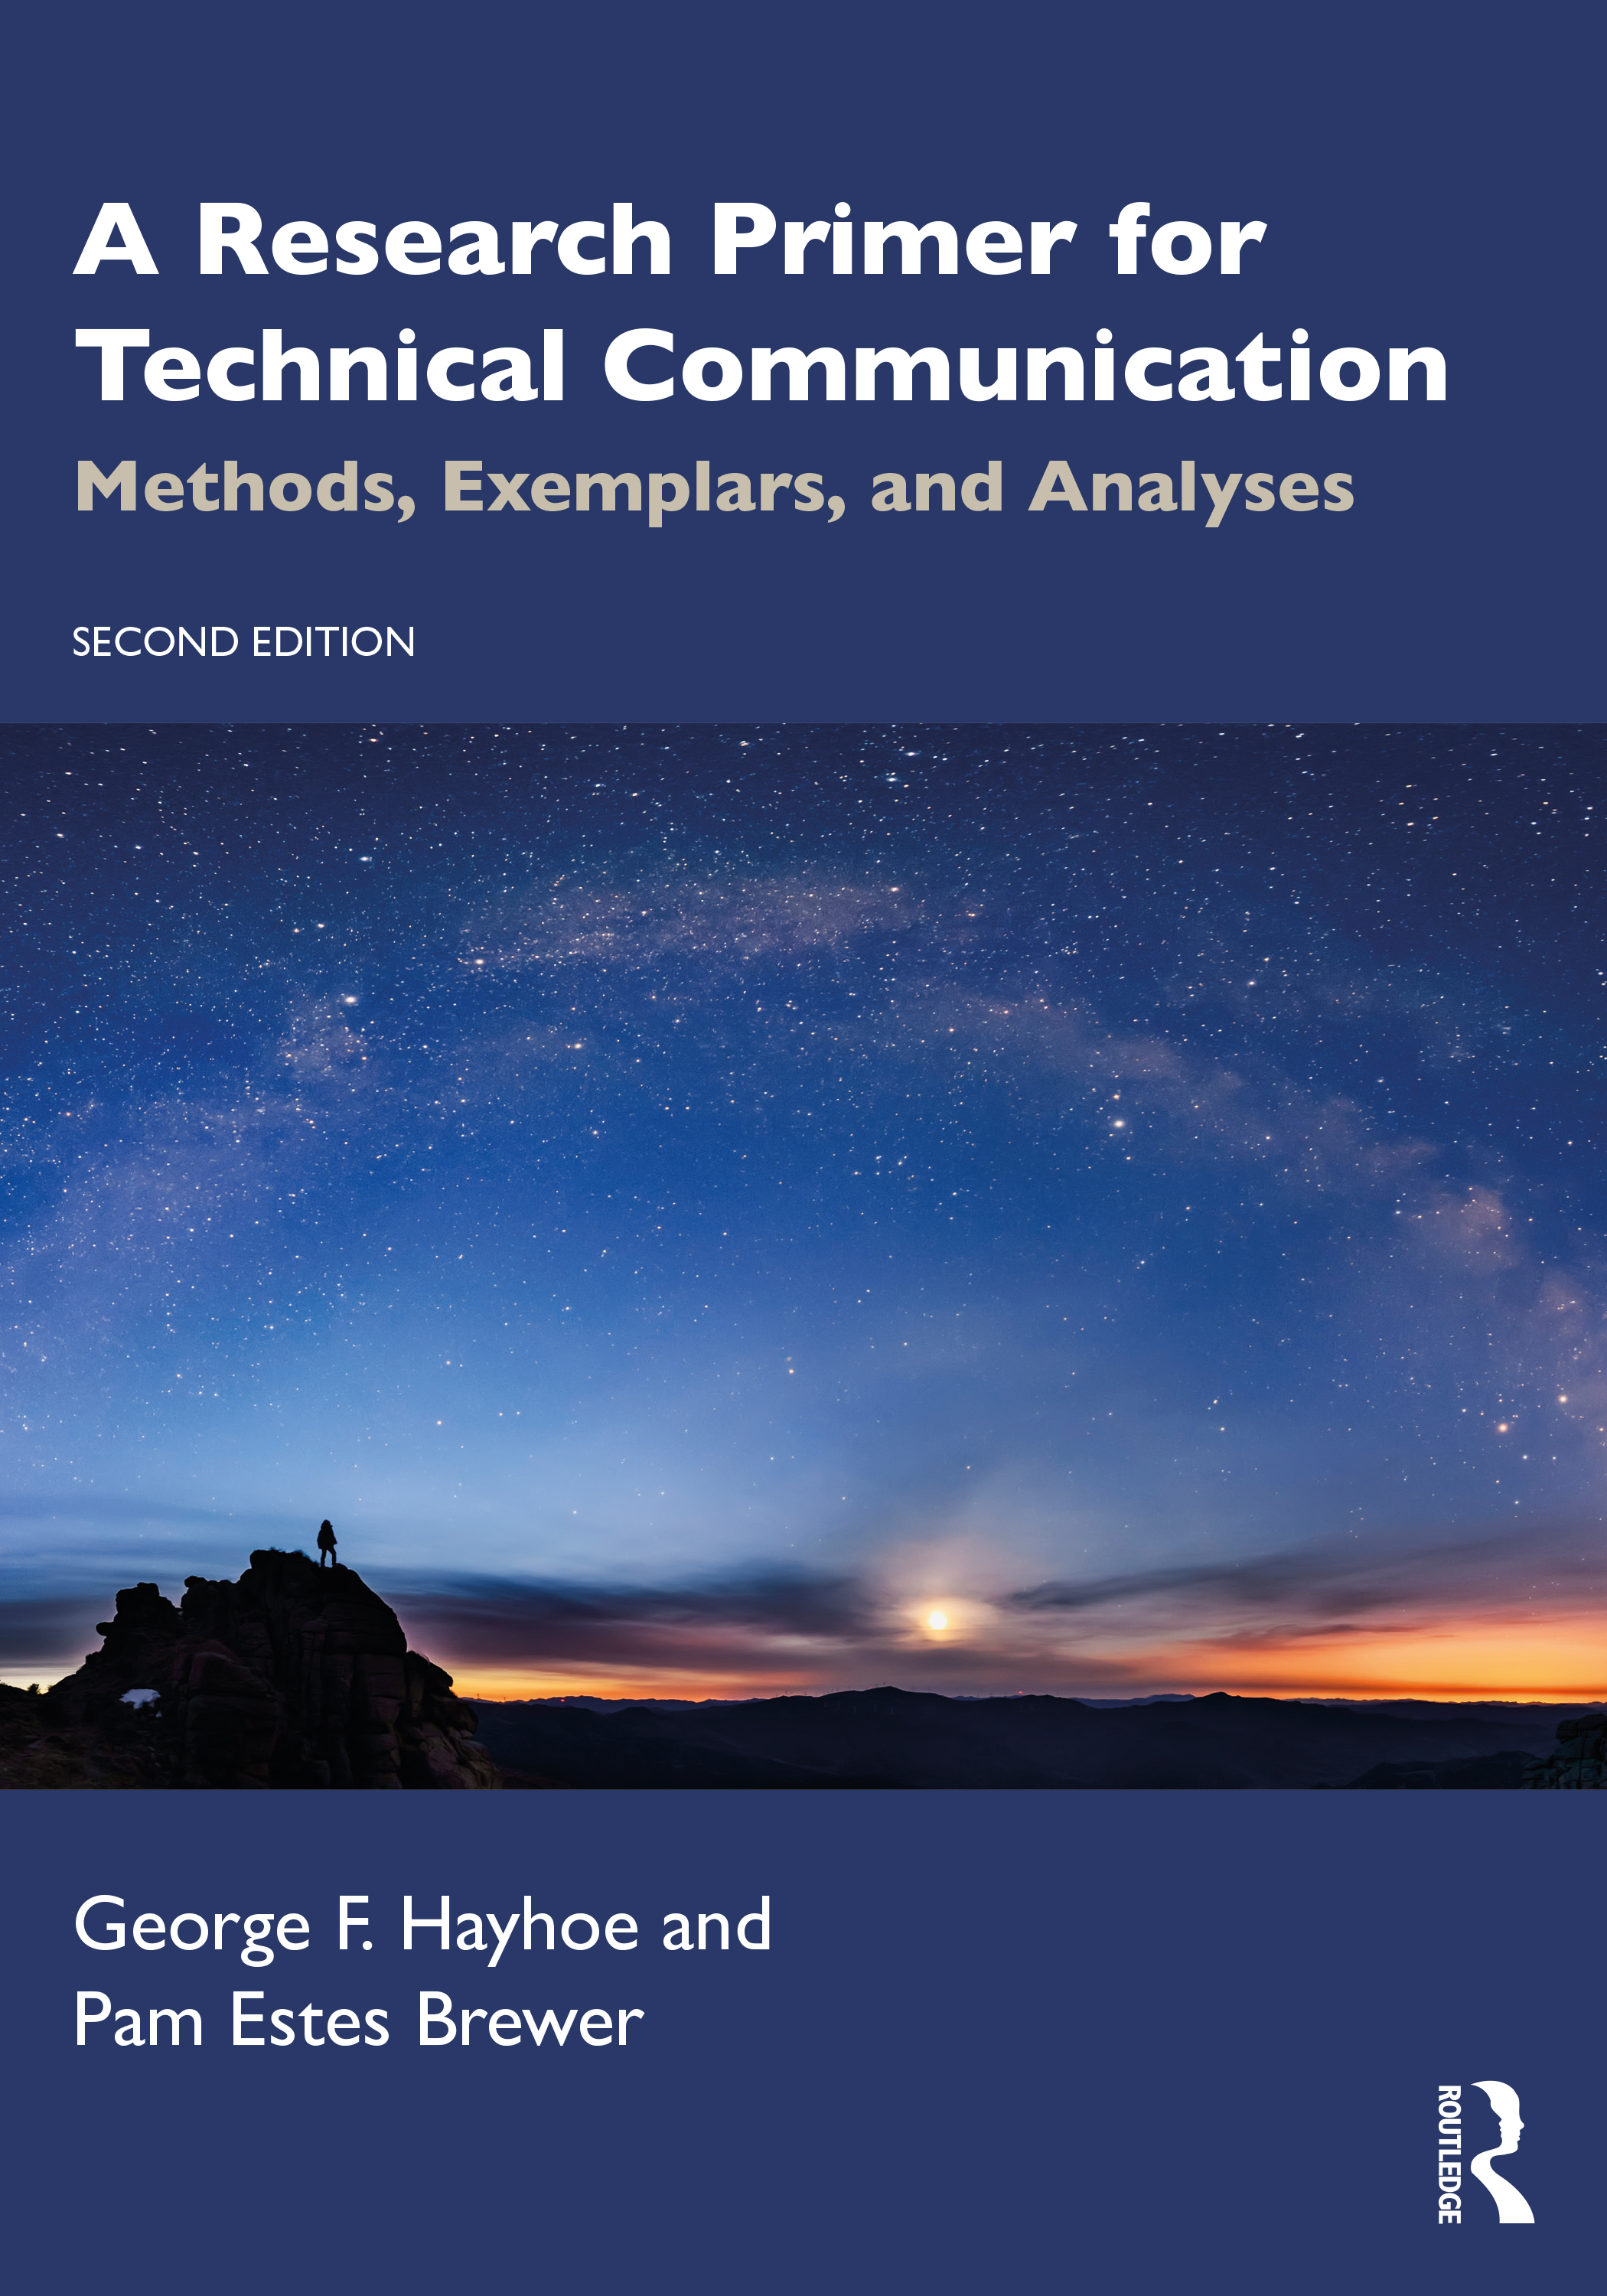 A Research Primer for Technical Communication: Methods, Exemplars, and Analyses book cover